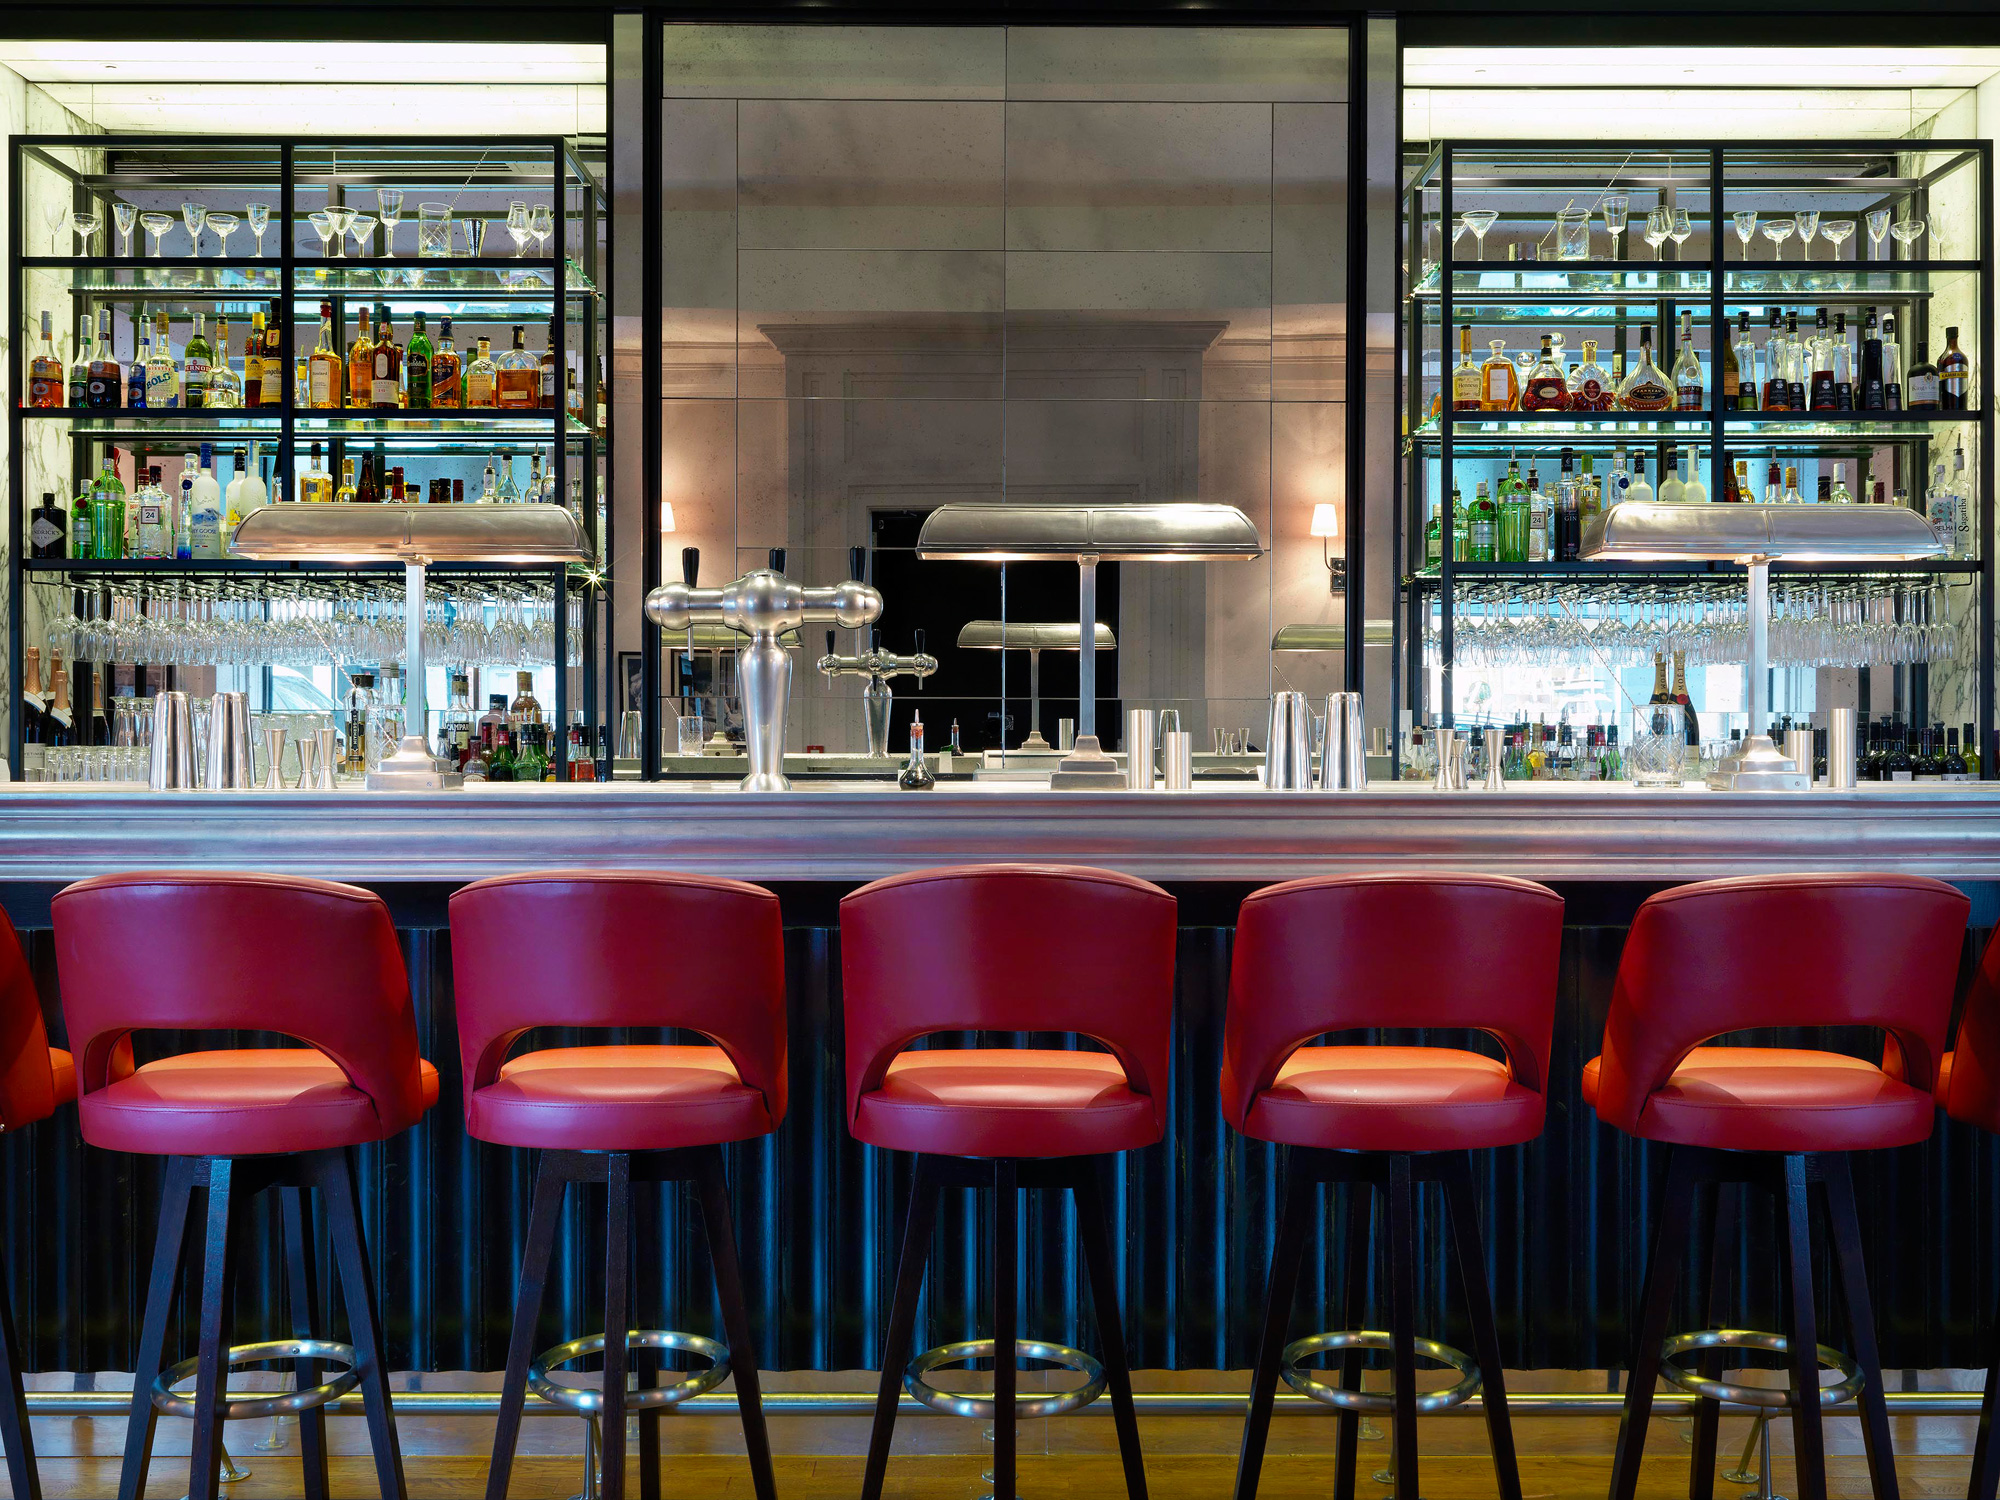 The well-stocked wine at 108 Brasserie features over 40 bins